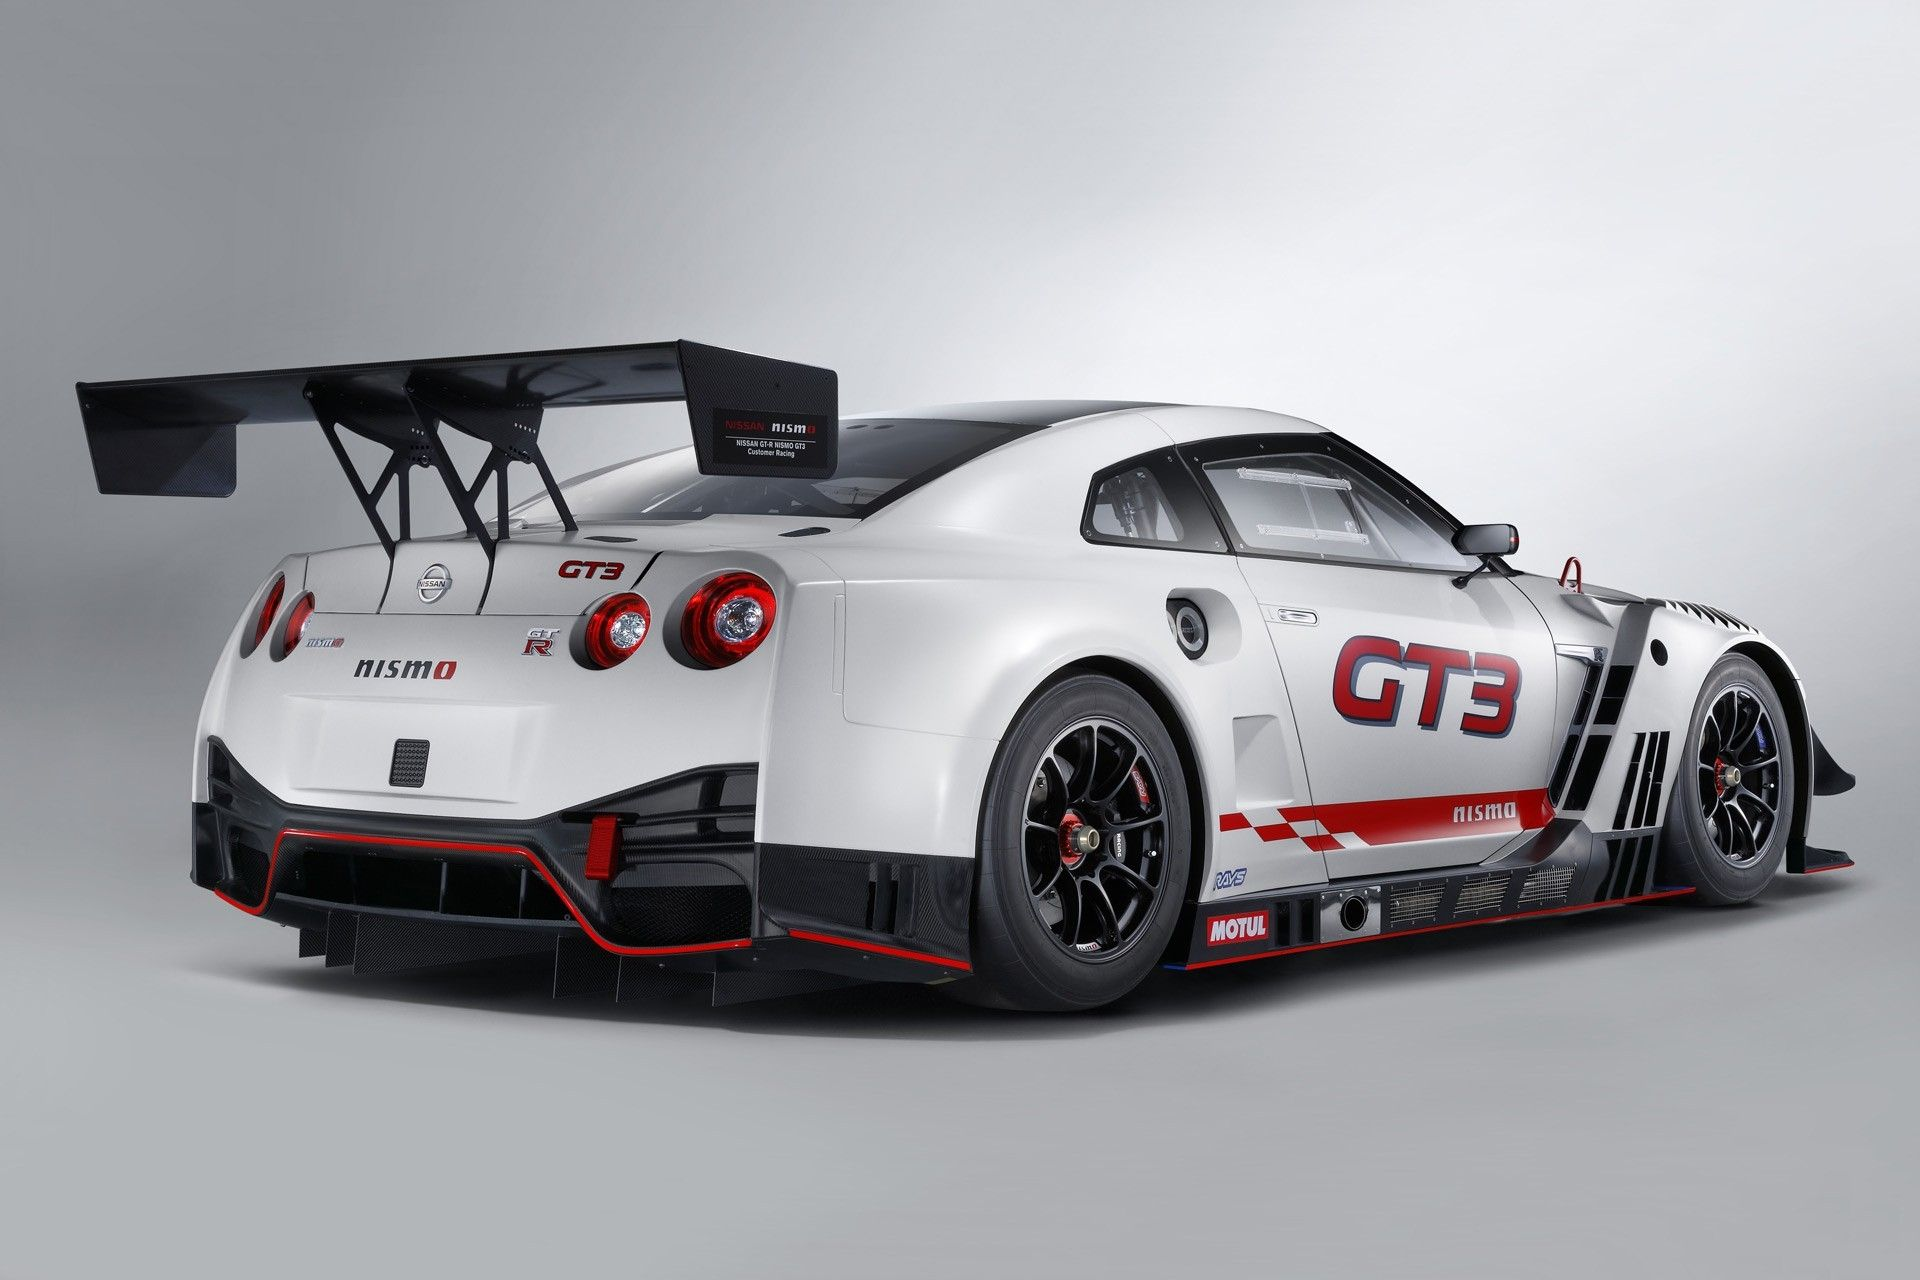 2019 Nissan Gt R Review Specs And Release Date Nissan Gtr Nissan Gt R Nissan Gtr Nismo